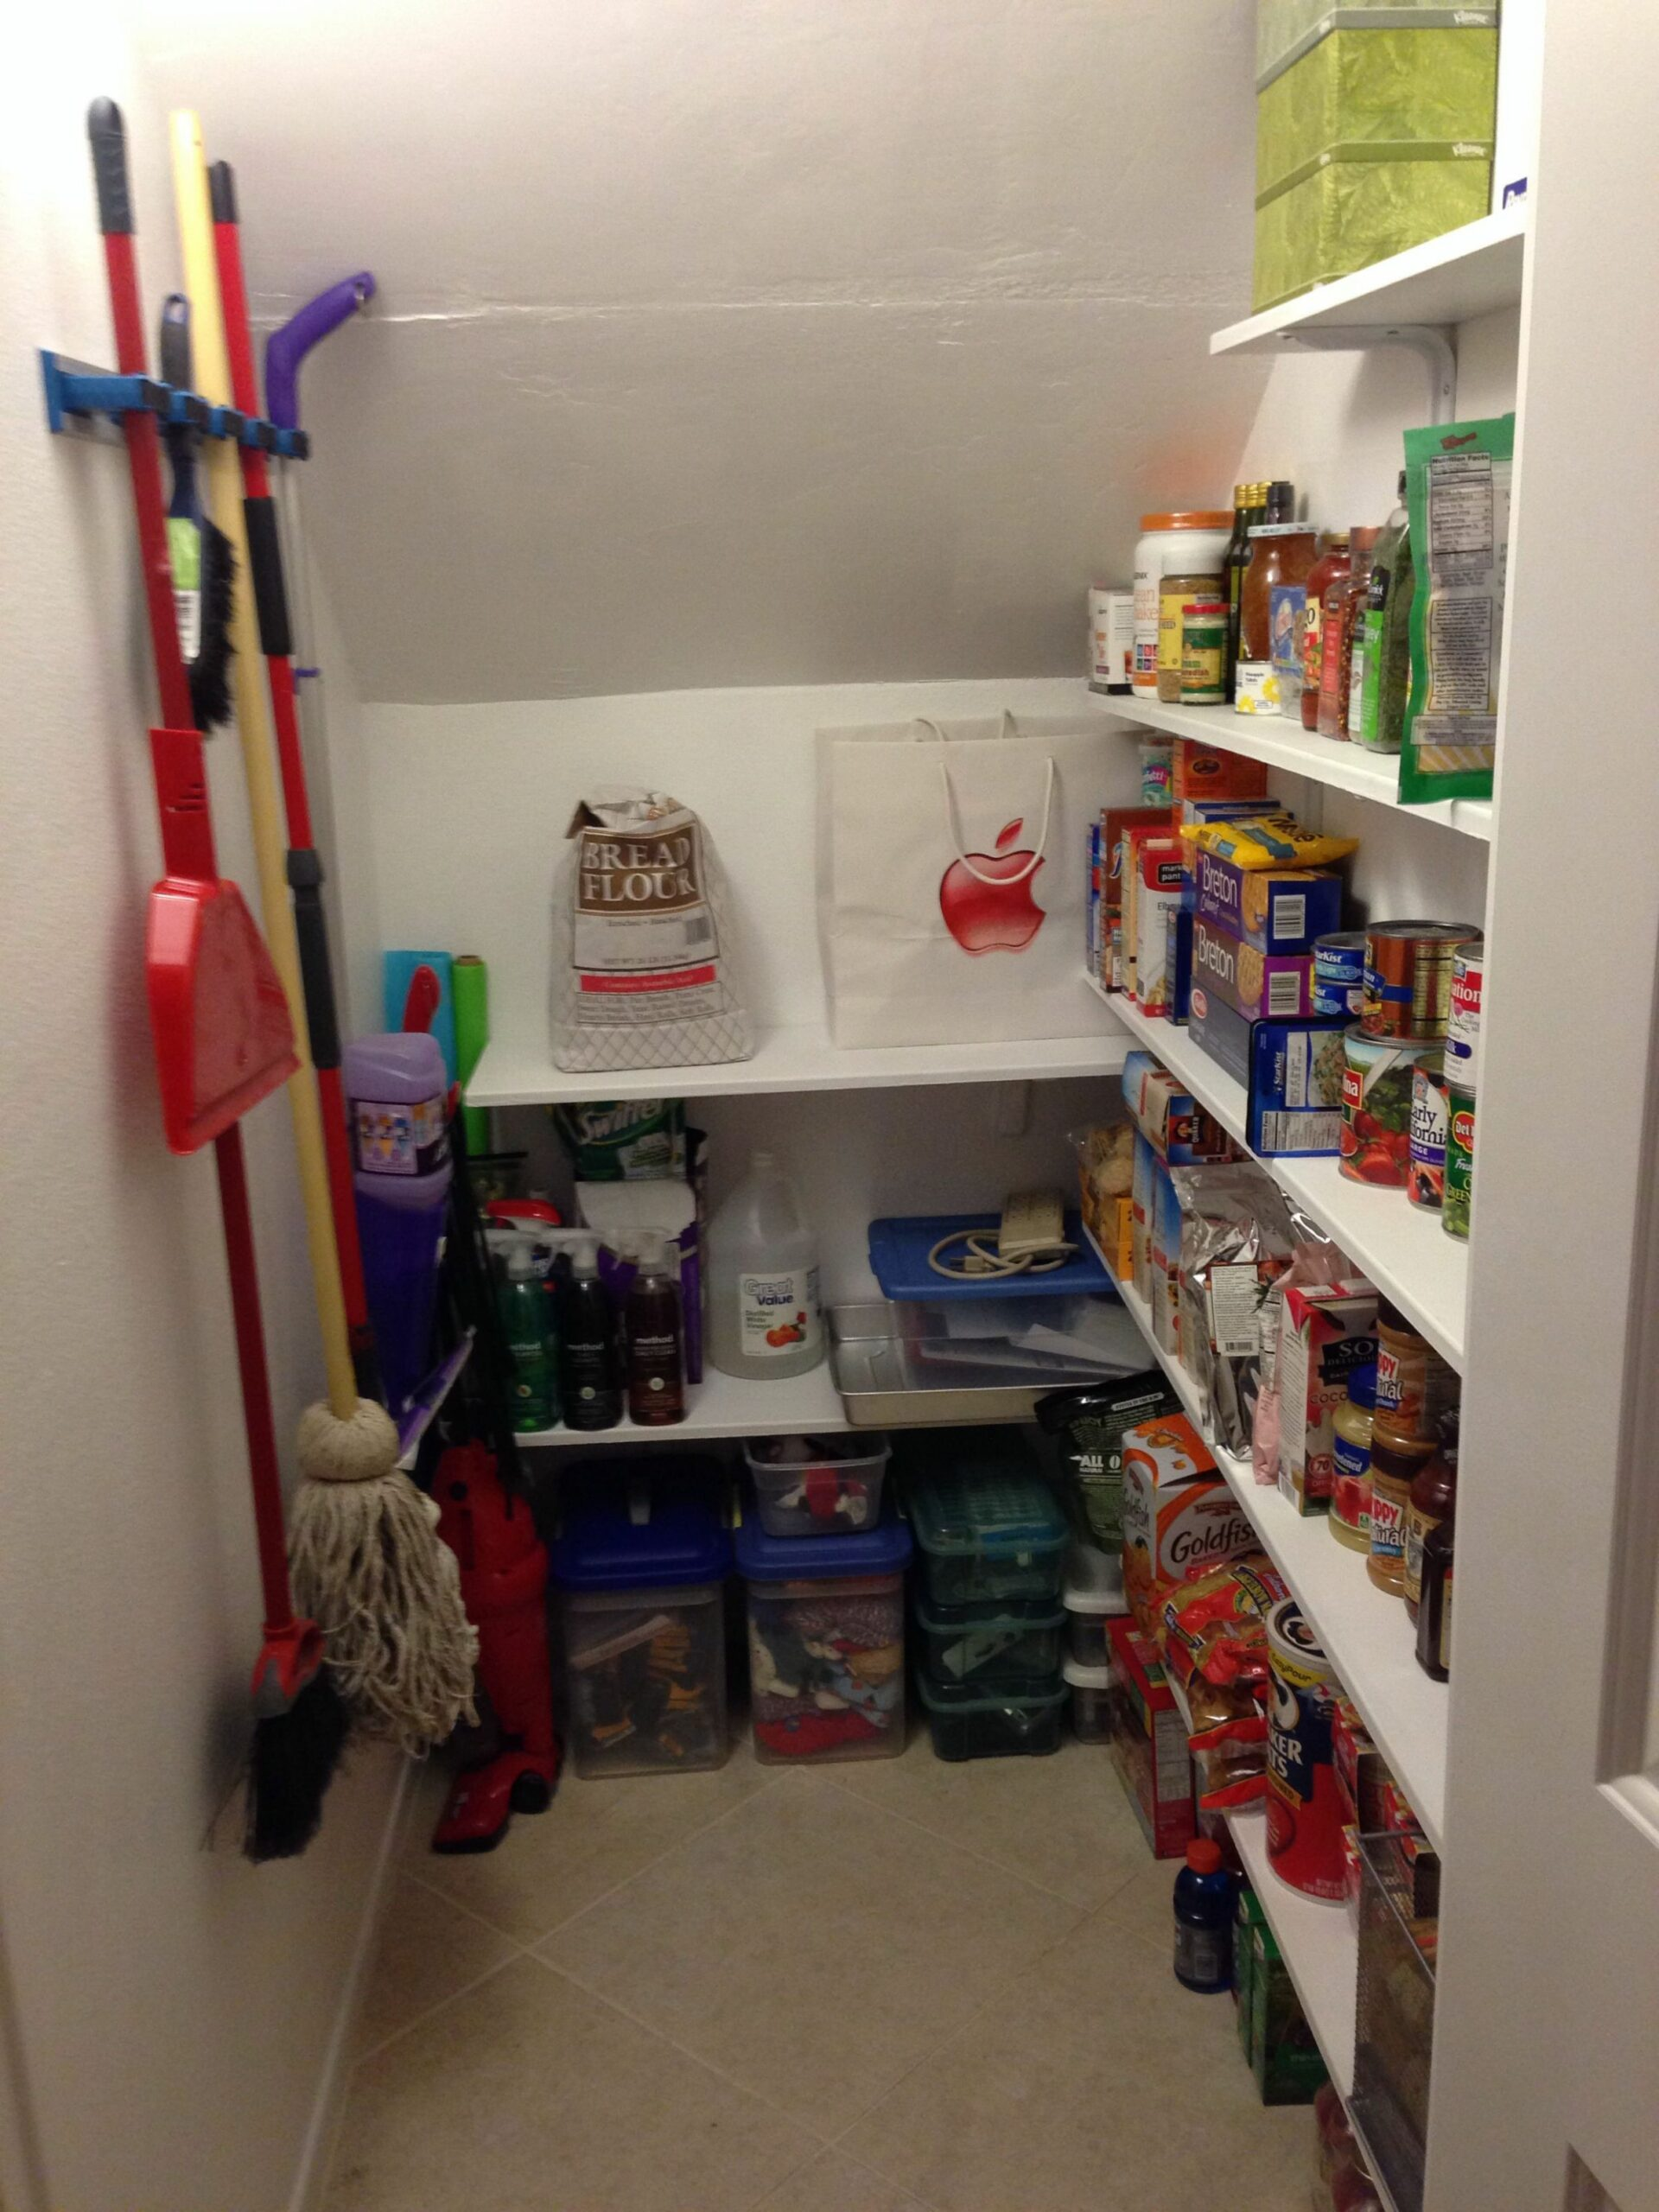 Under stairs coat closet turned pantry (With images) | Closet ...